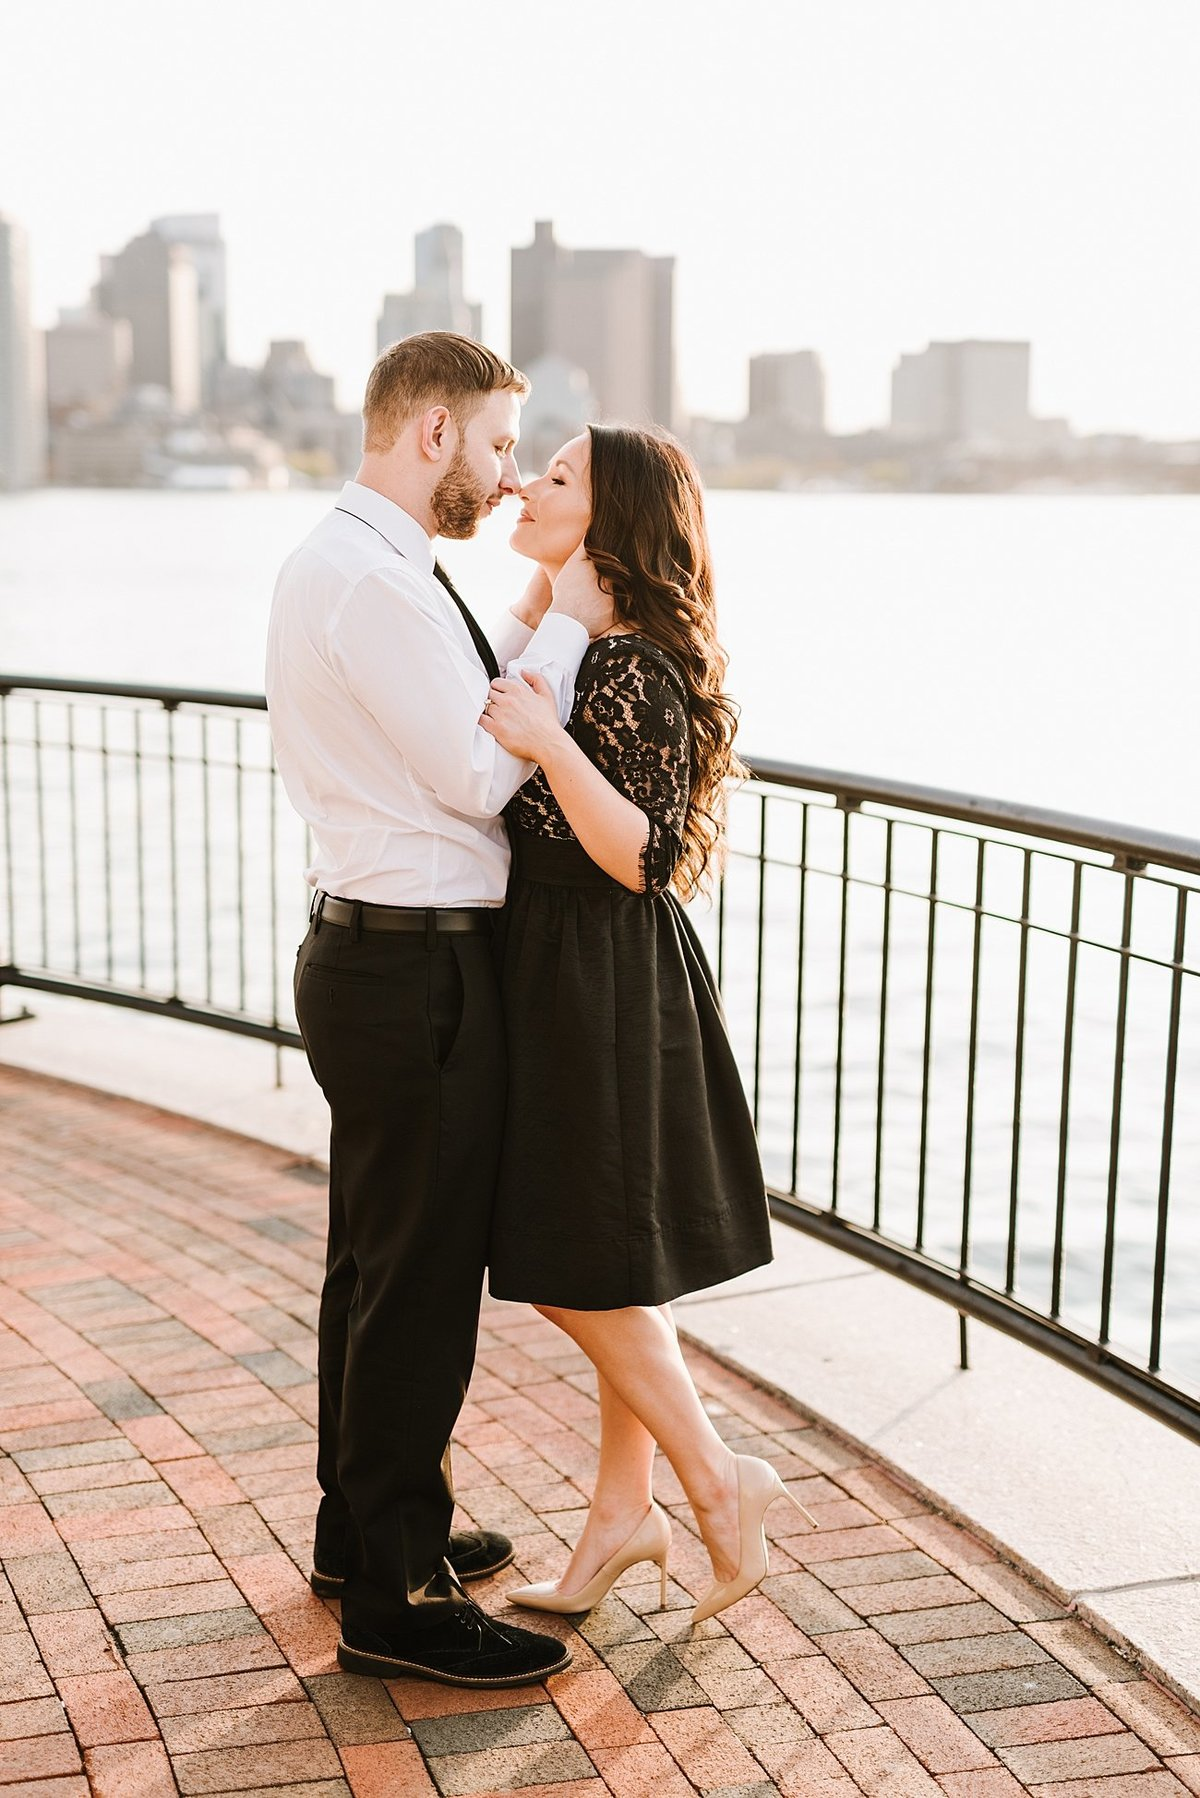 piers-park-engagement-session-boston-wedding-photographer-photo_0009